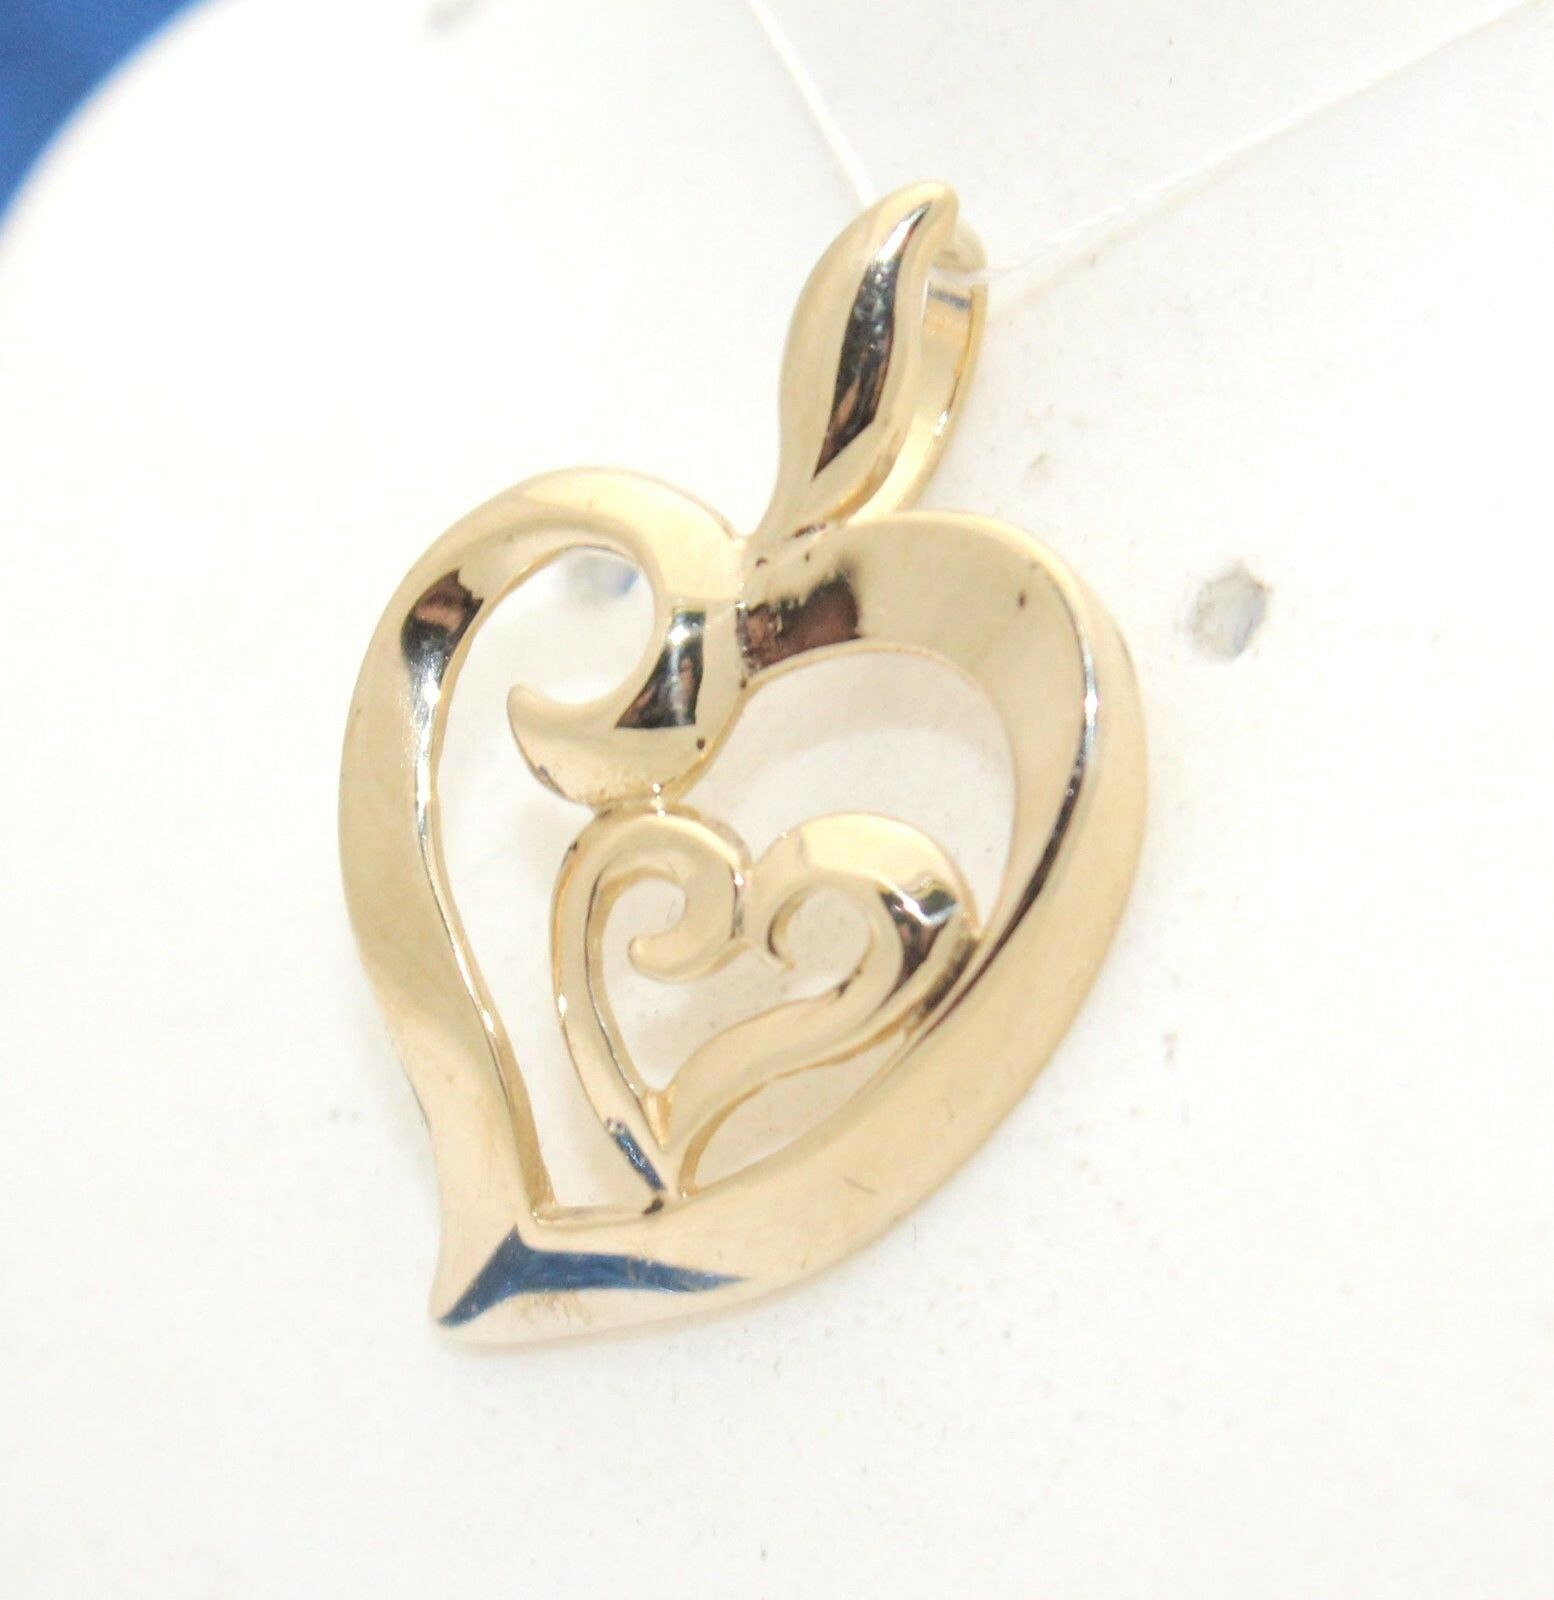 POLISHED DOUBLE HEARTS PENDANT PENDANT SOLID 14 K gold 2.0 g